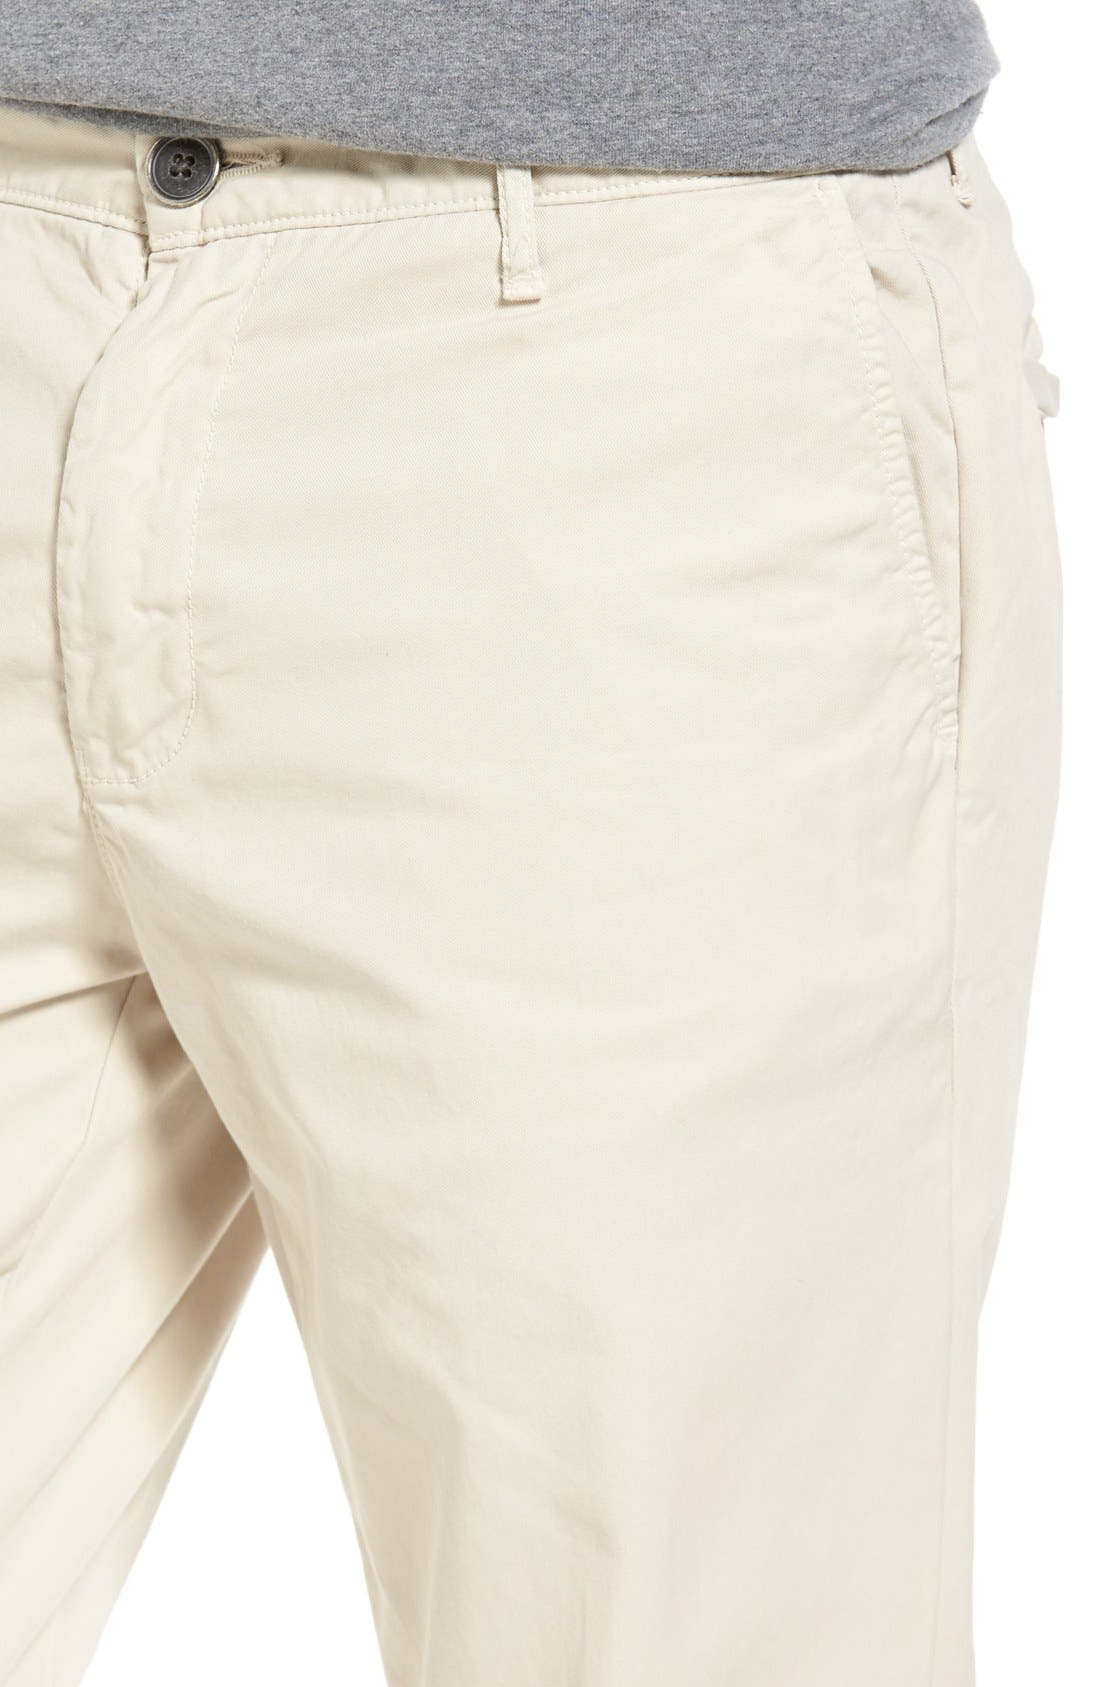 Mason Chino Pants,                             Alternate thumbnail 4, color,                             String